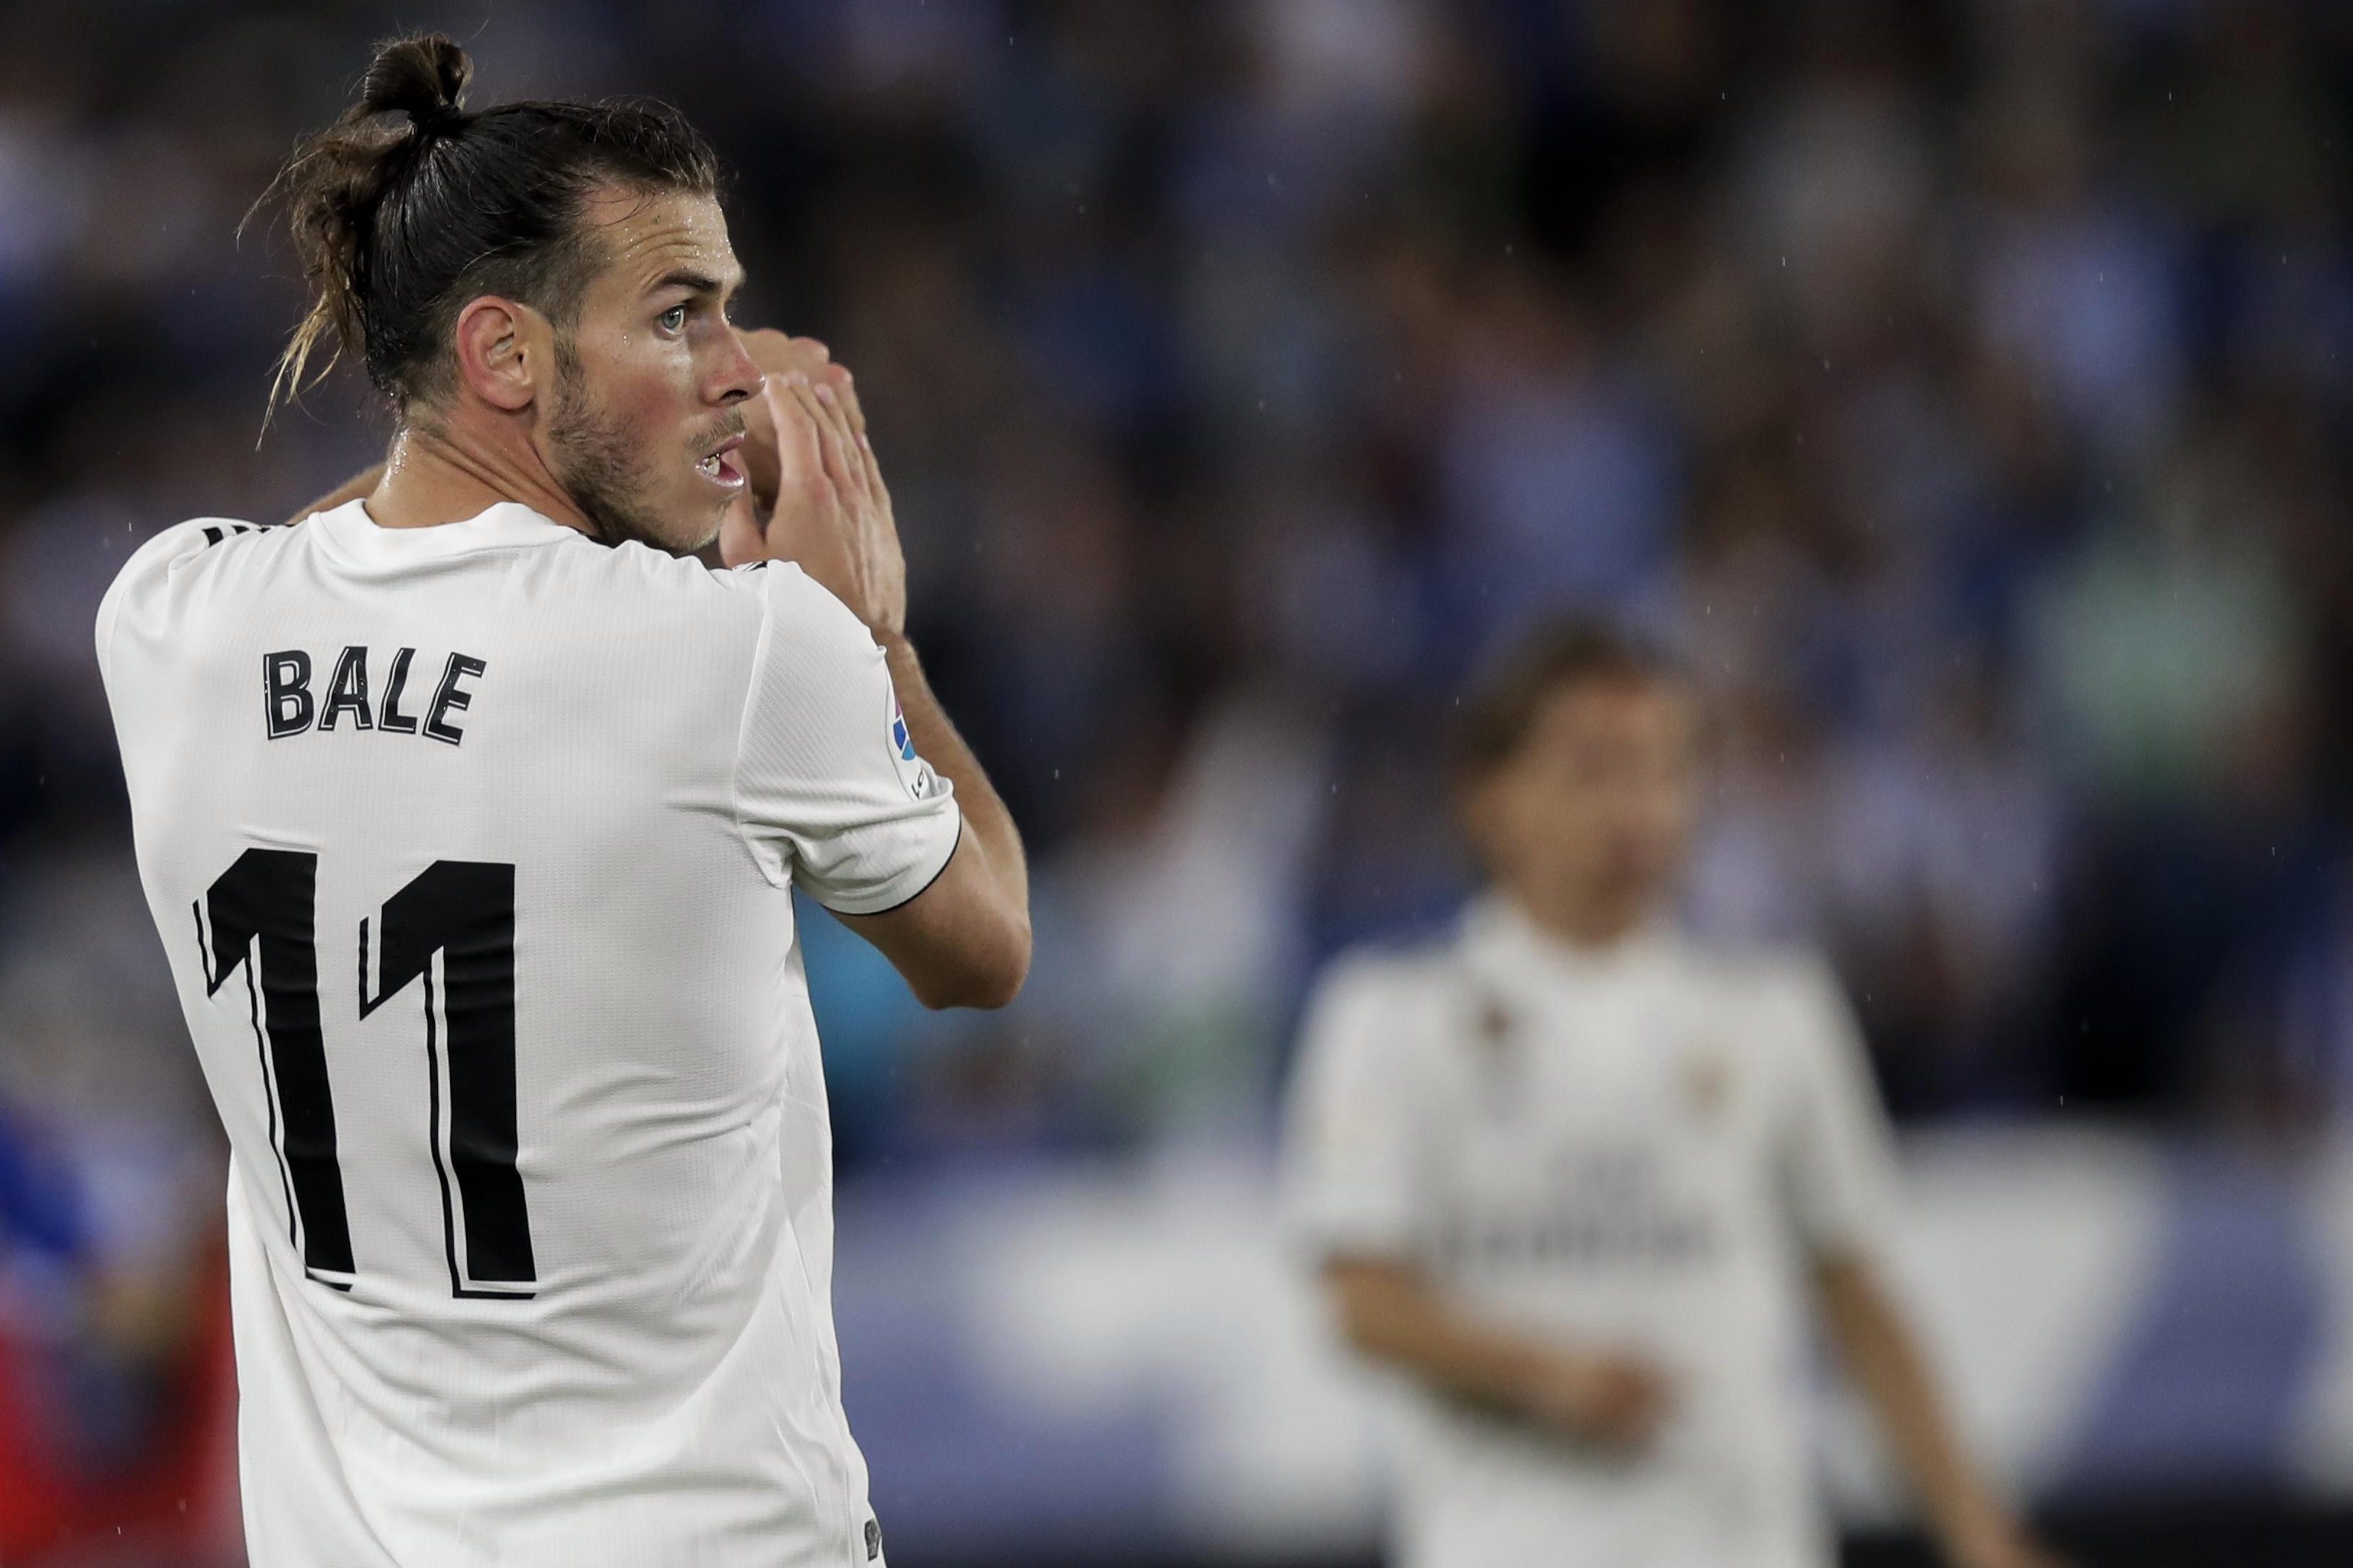 Bale out needed